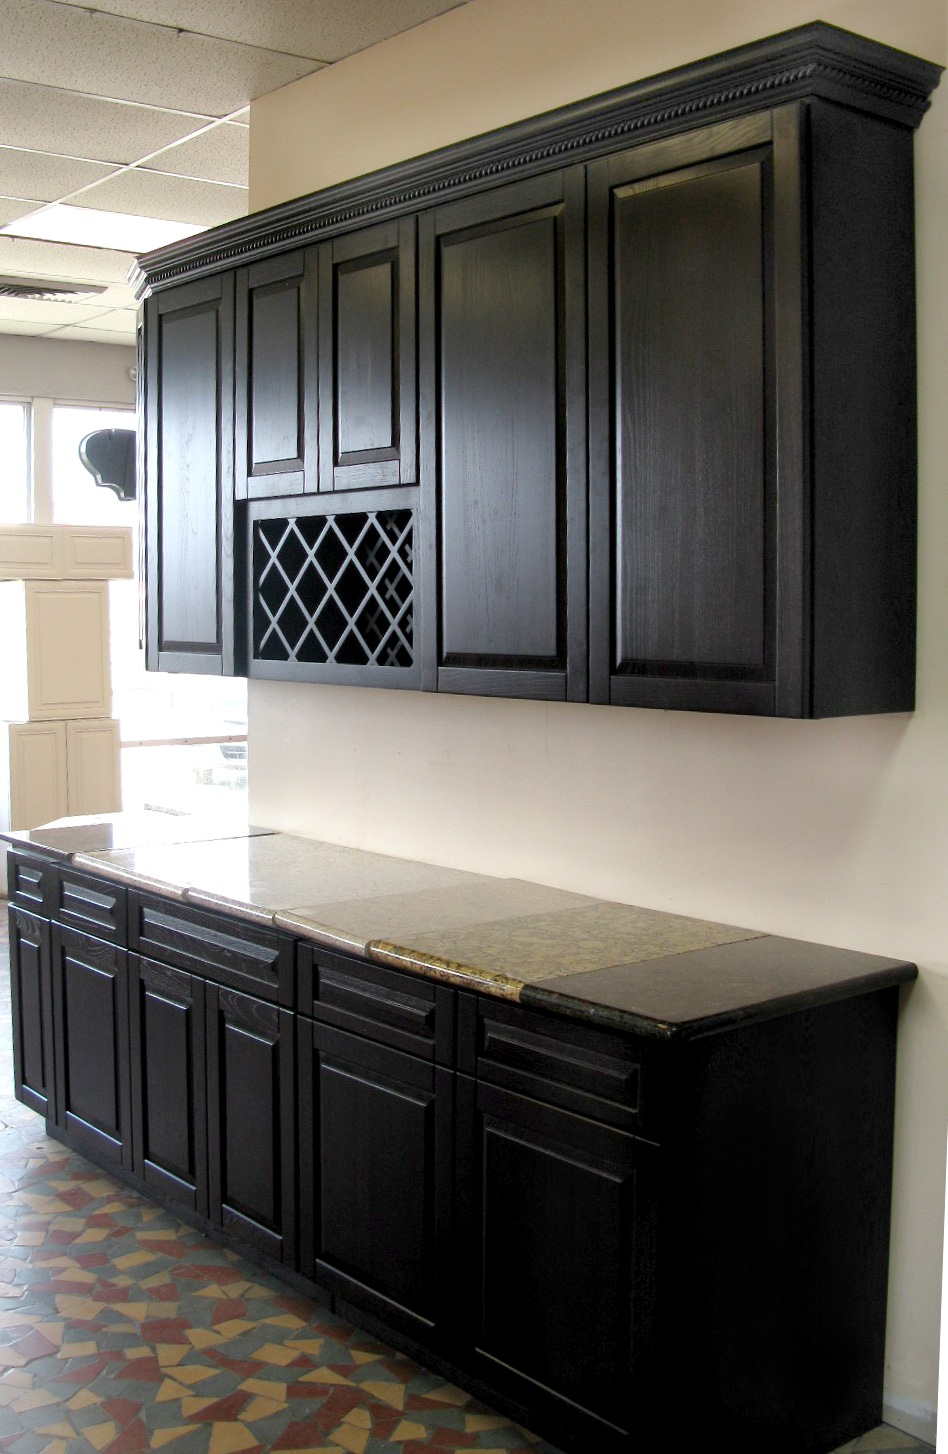 Cabinets for kitchen photos black kitchen cabinets for Images of black kitchen cabinets